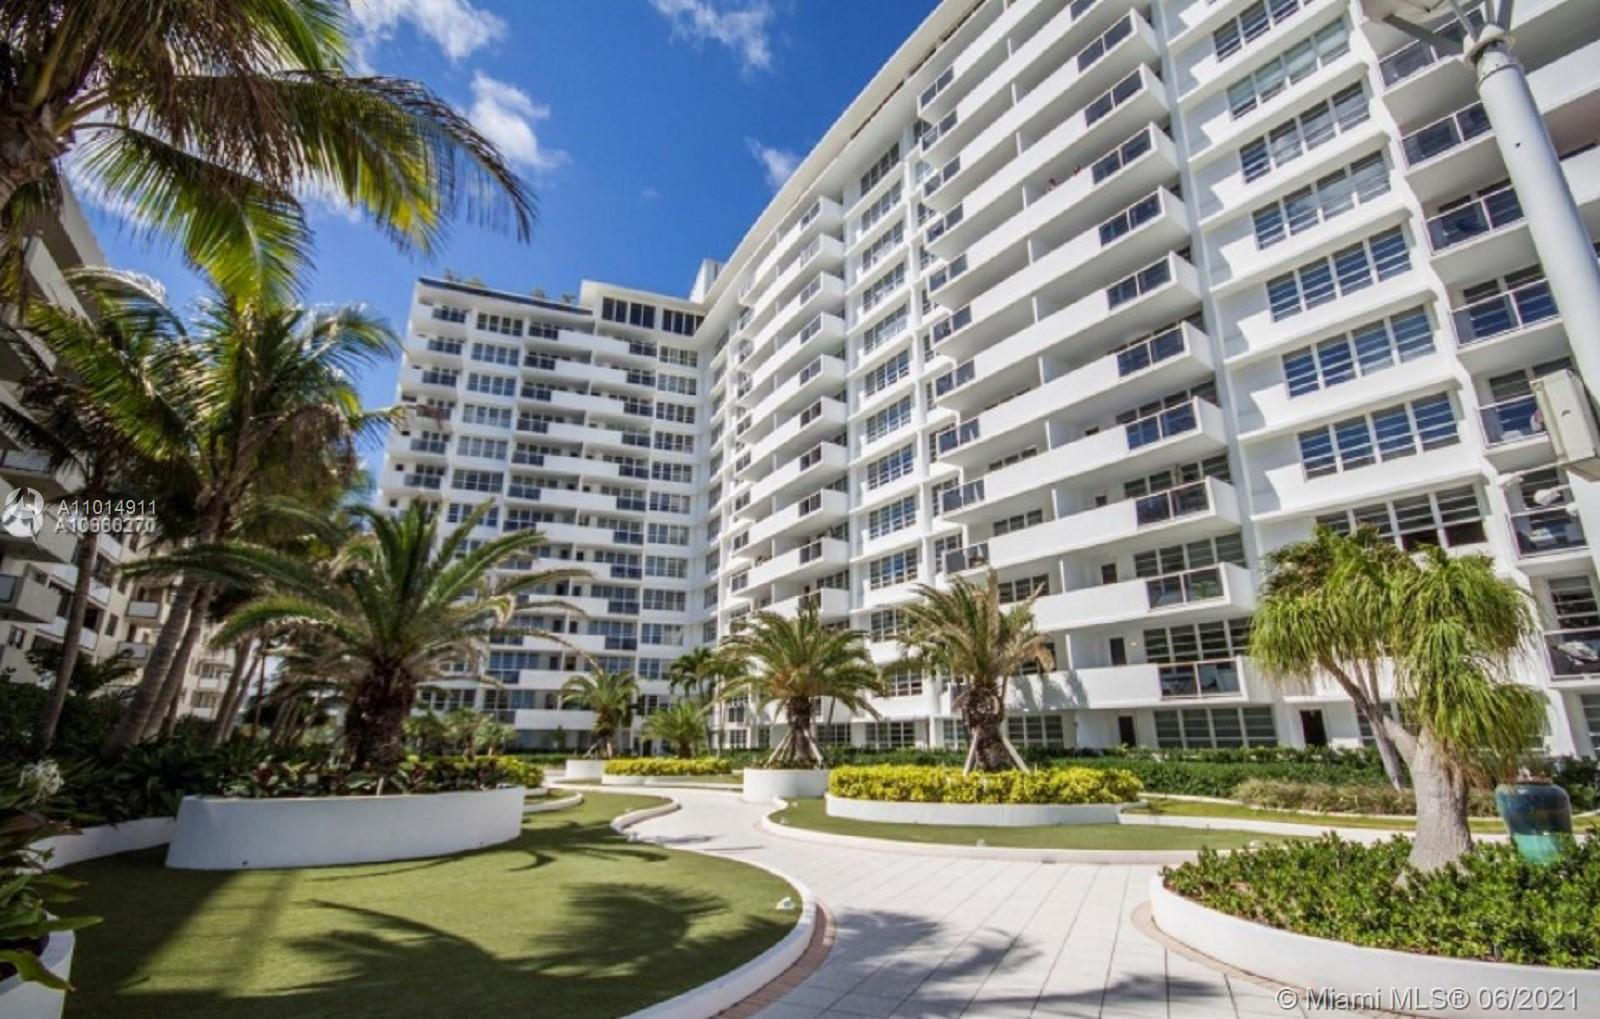 100  Lincoln Rd #1221 For Sale A11014911, FL